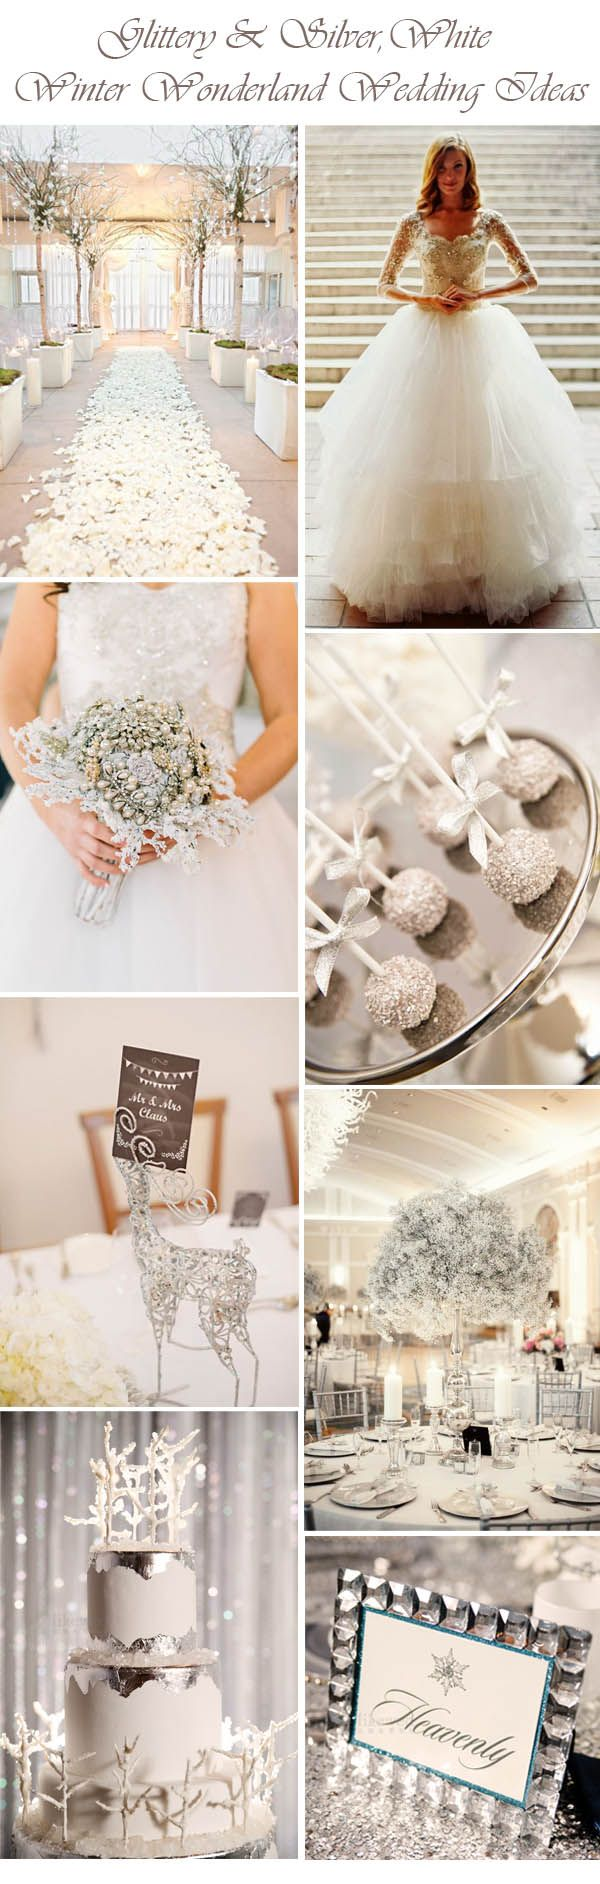 glittery and silver white winter wonderland wedding ideas